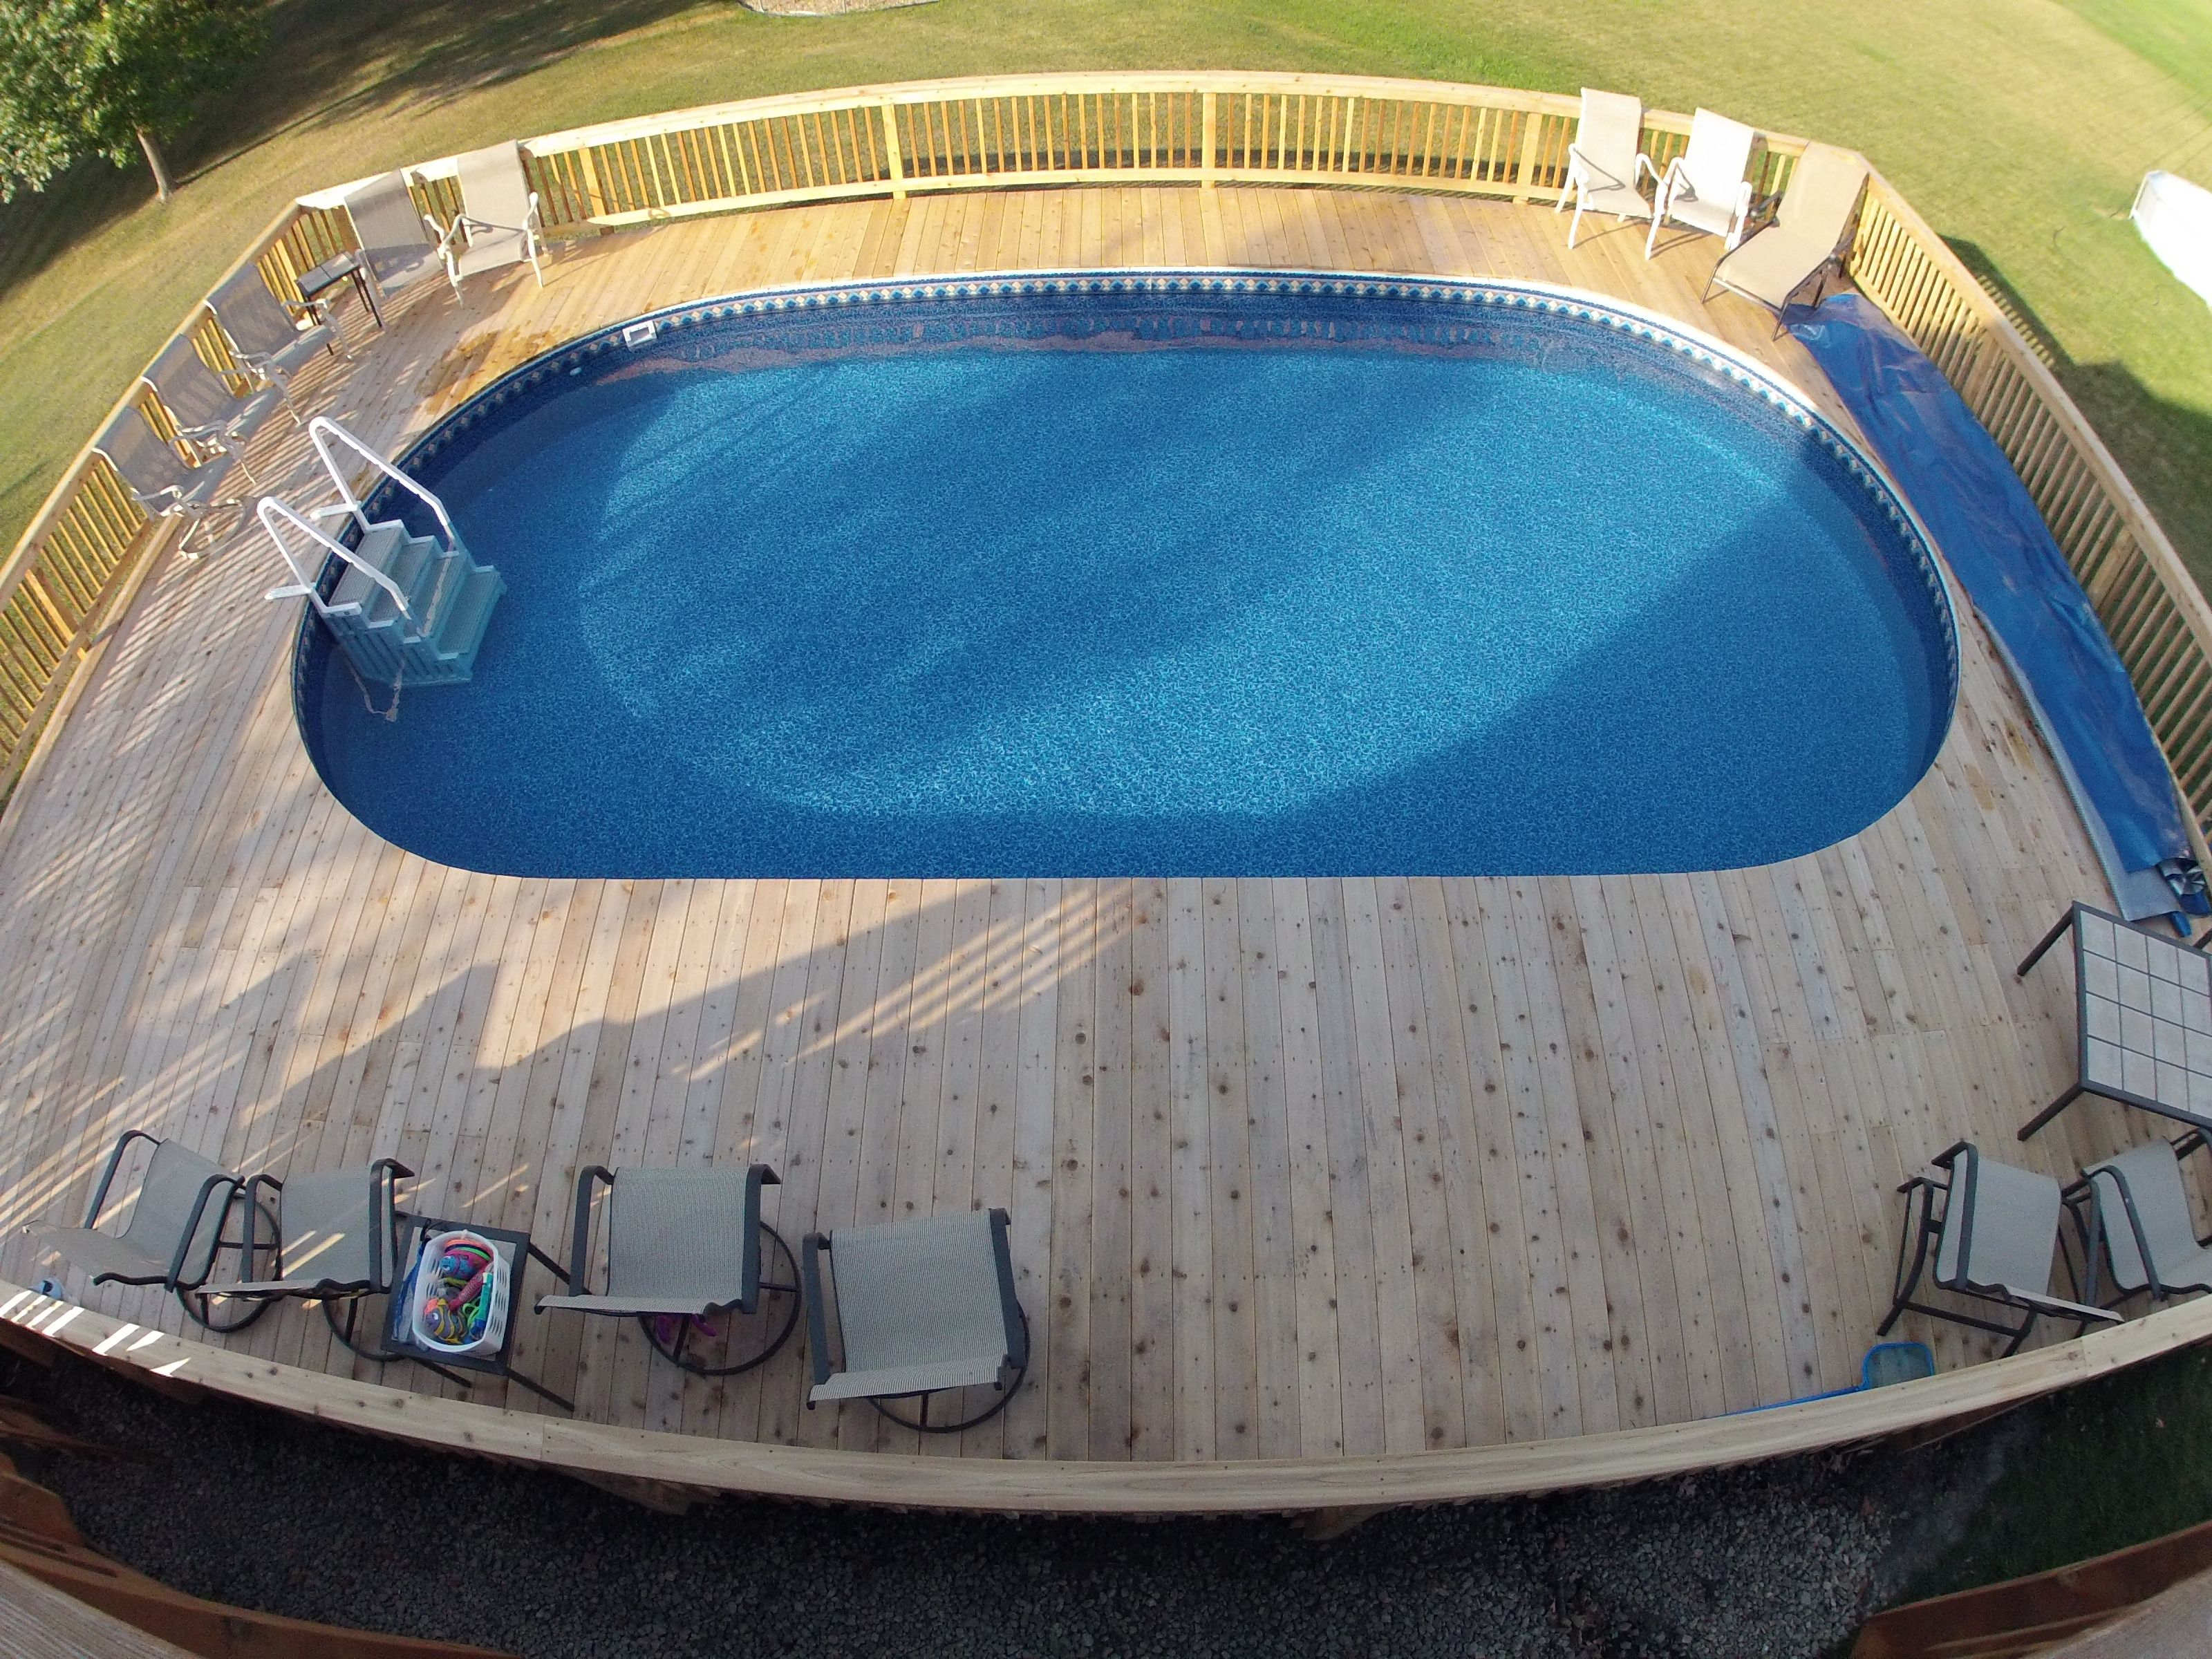 Finished metric oval pool pool supplies pool - Above ground swimming pool supplies ...